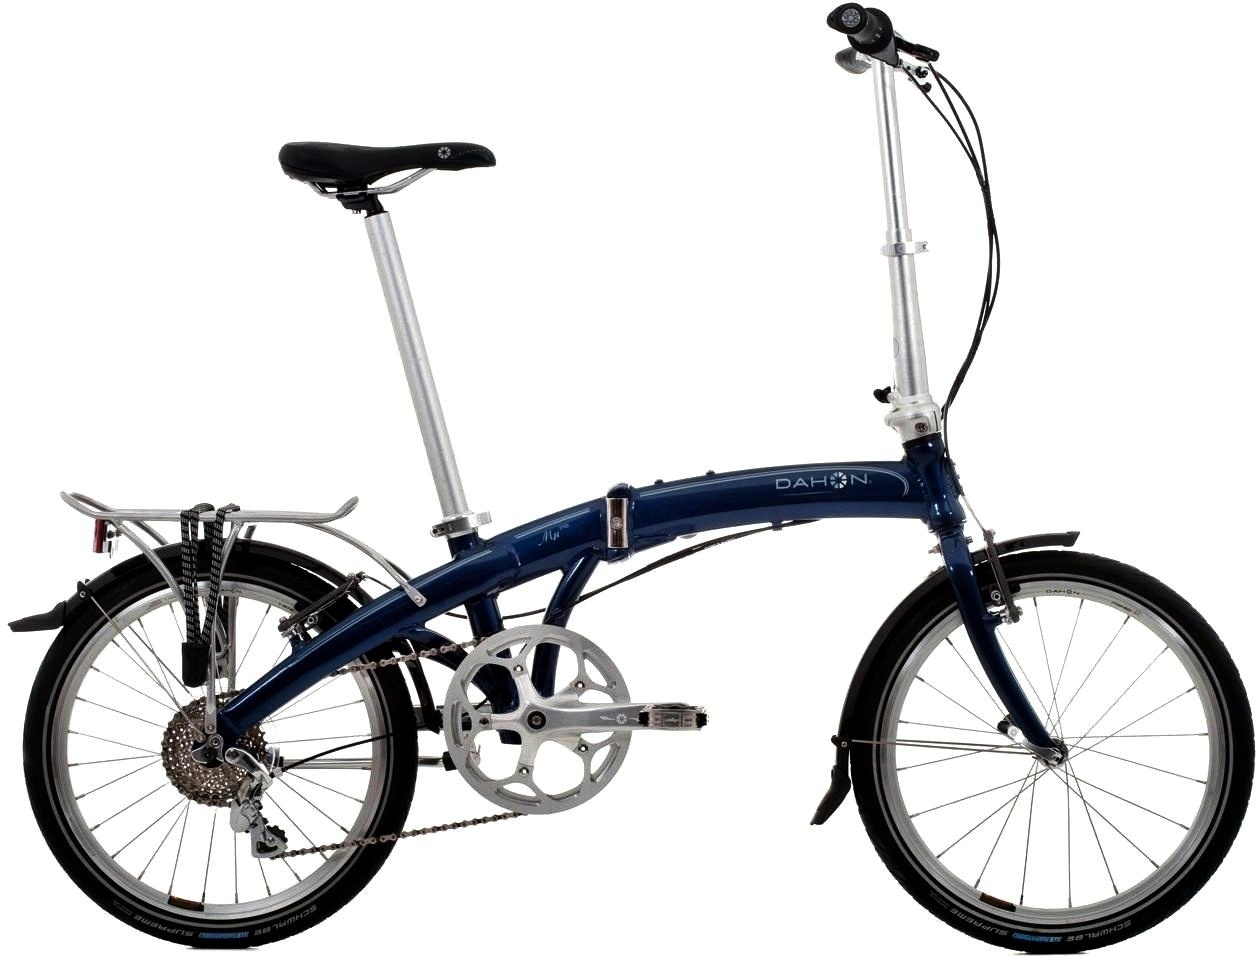 Kolo Dahon MU P8 Blue model 2012